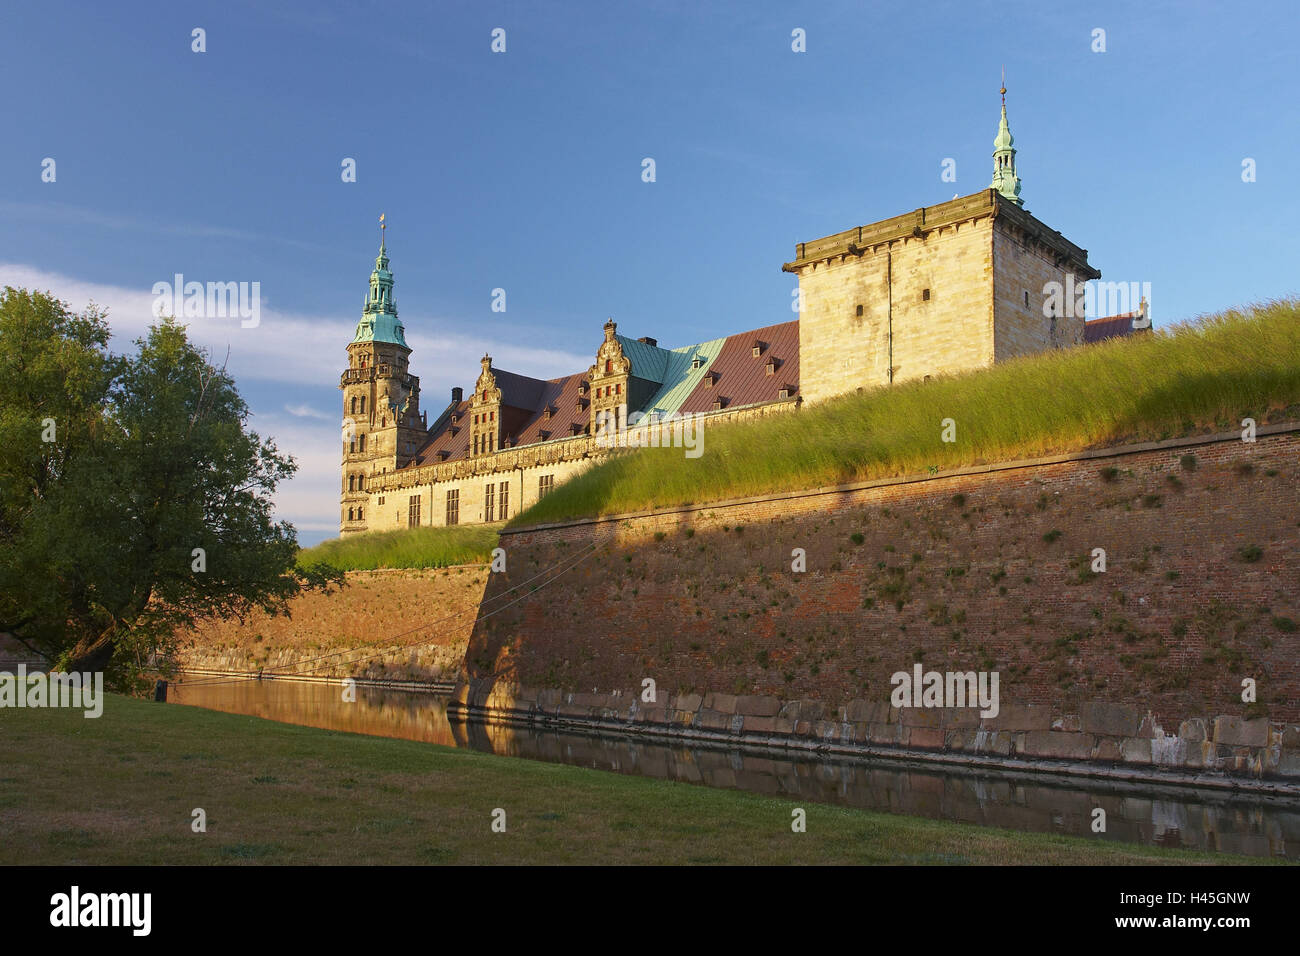 Denmark, fortress defensive wall, castle Kronborg, evening sun, - Stock Image